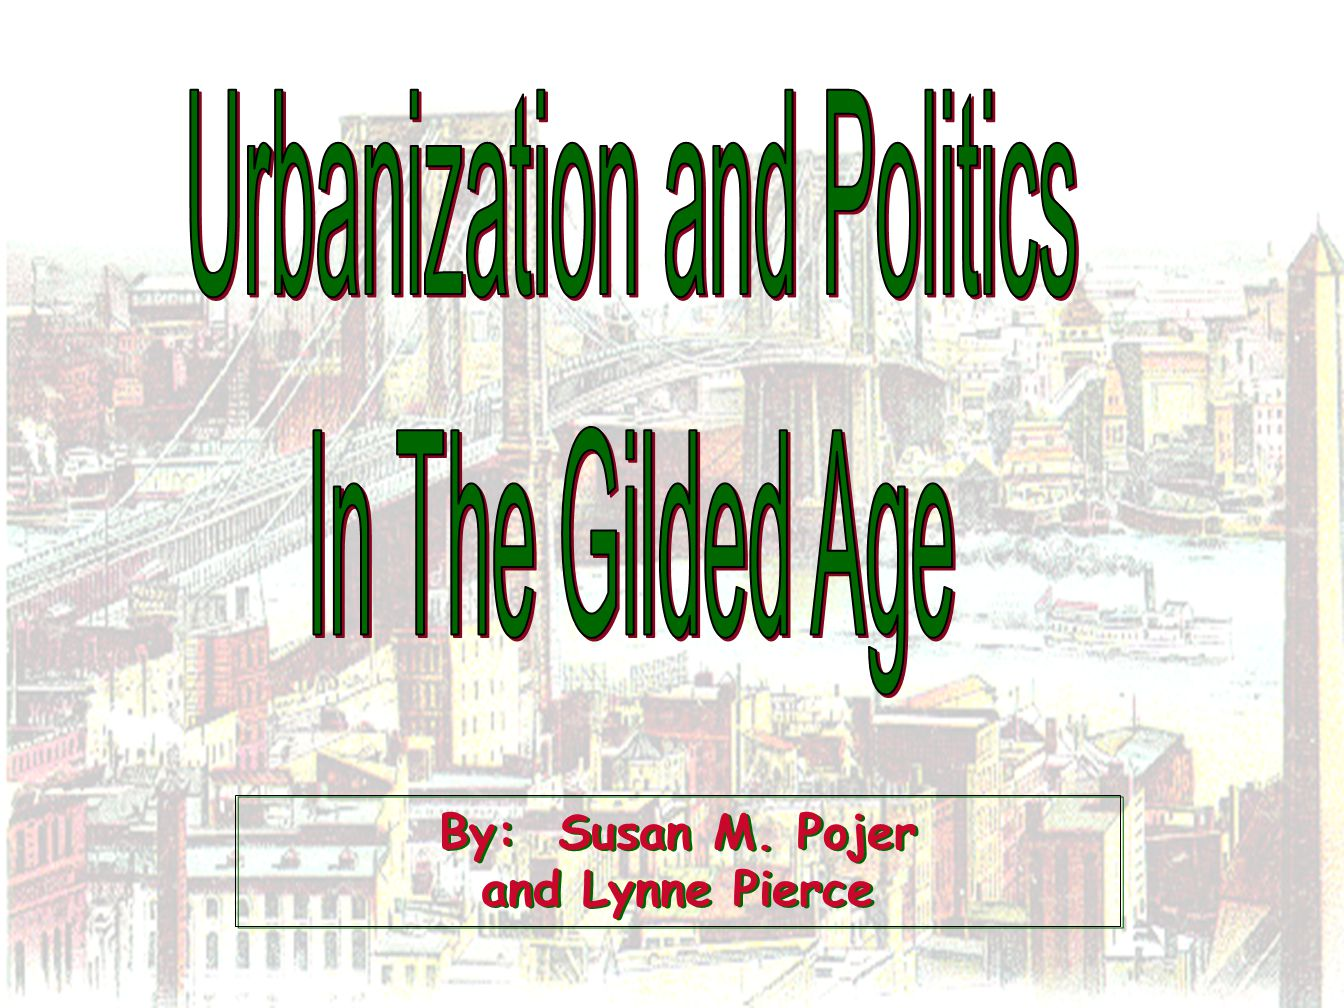 By: Susan M. Pojer and Lynne Pierce